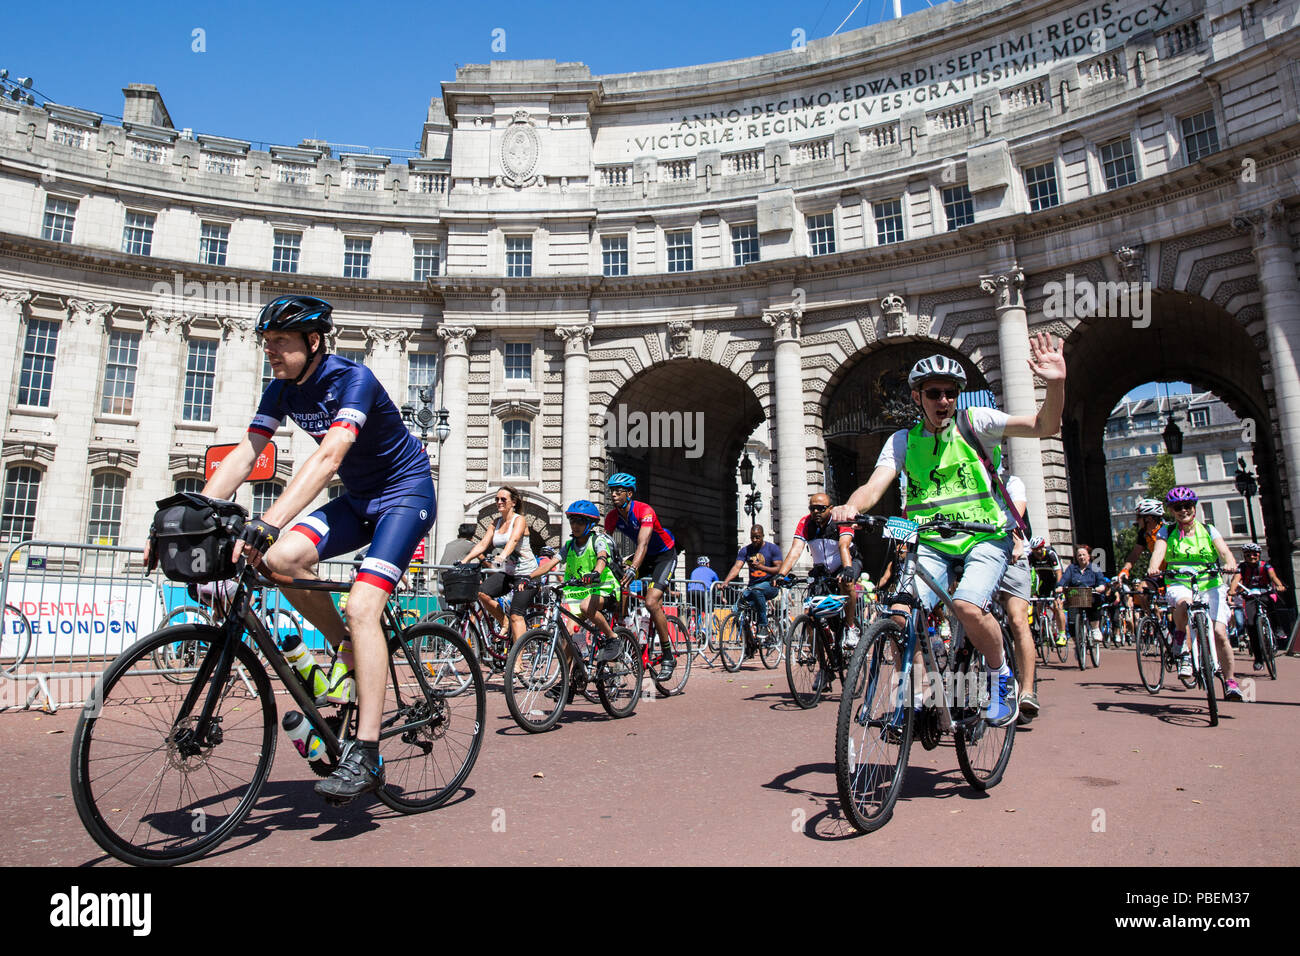 London, UK. 28th July, 2018. Members of the public take part in the Prudential RideLondon FreeCycle. This event enables people of all ages to enjoy cycling on traffic-free roads through central London passing some of the capital's most iconic landmarks. Credit: Mark Kerrison/Alamy Live News Stock Photo